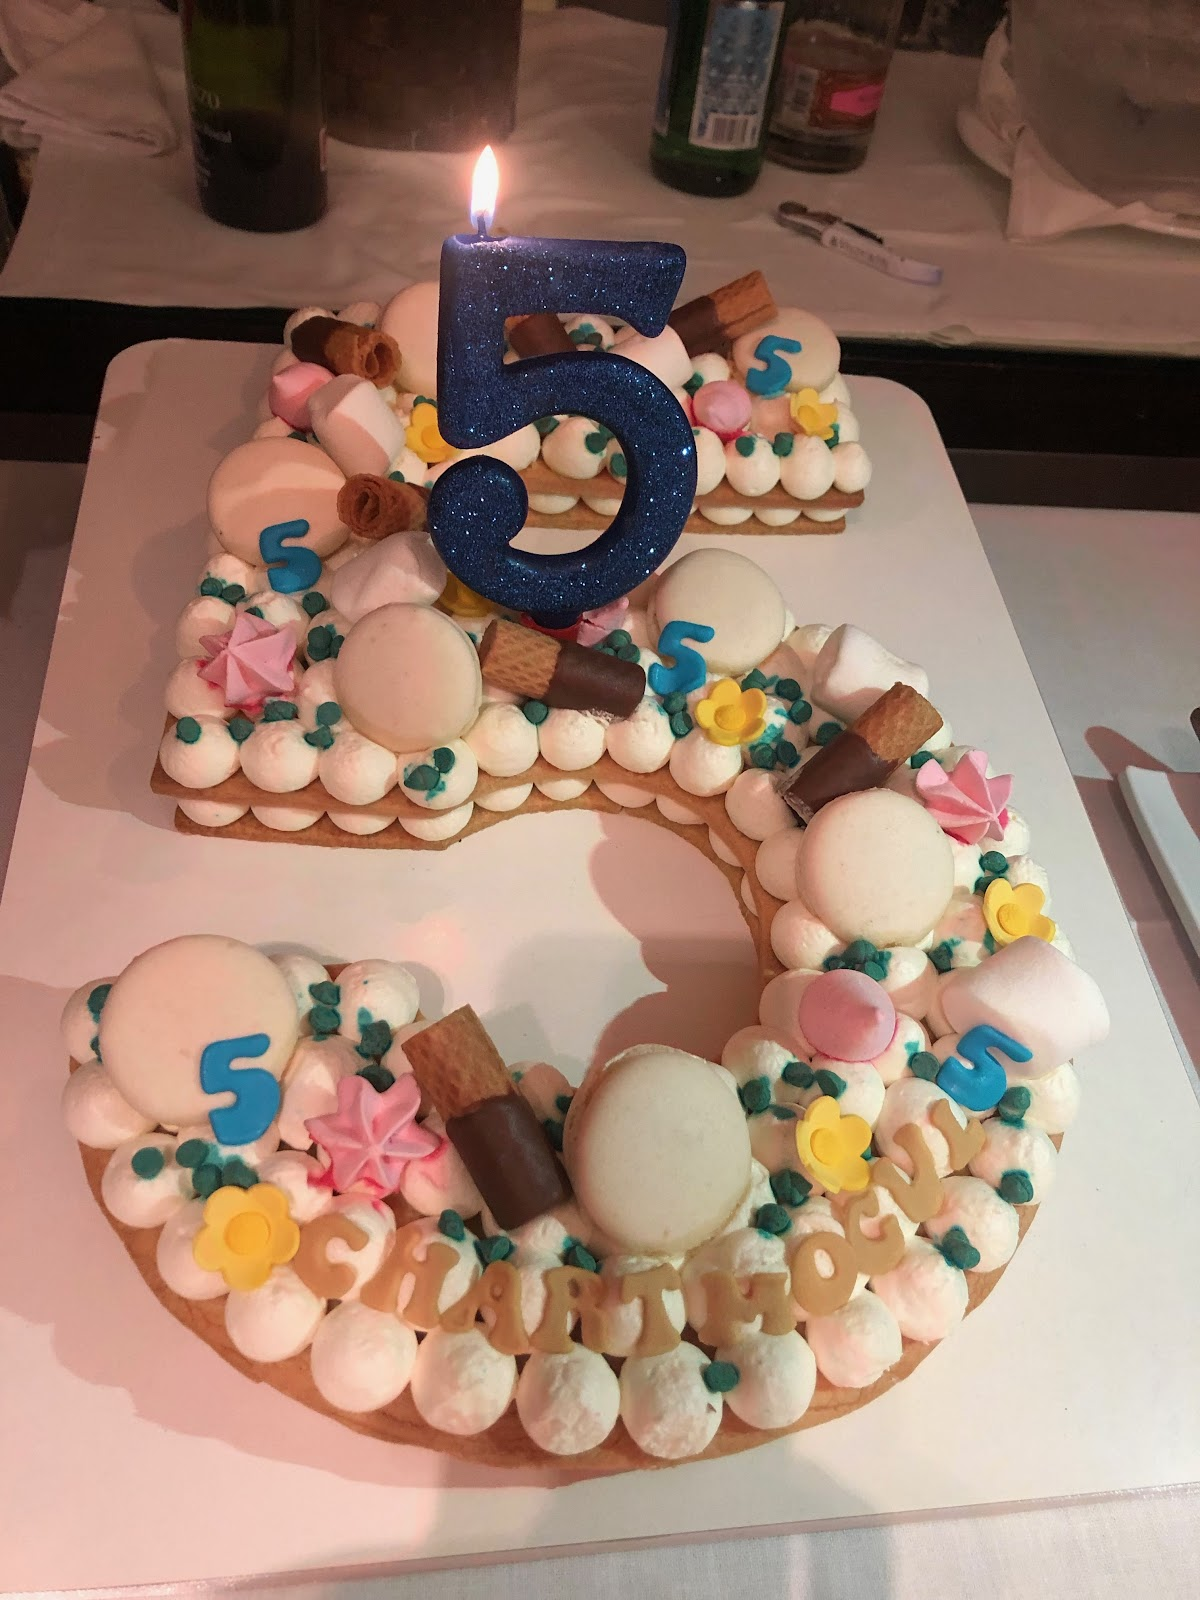 The cake for ChartMogul's 5th birthday